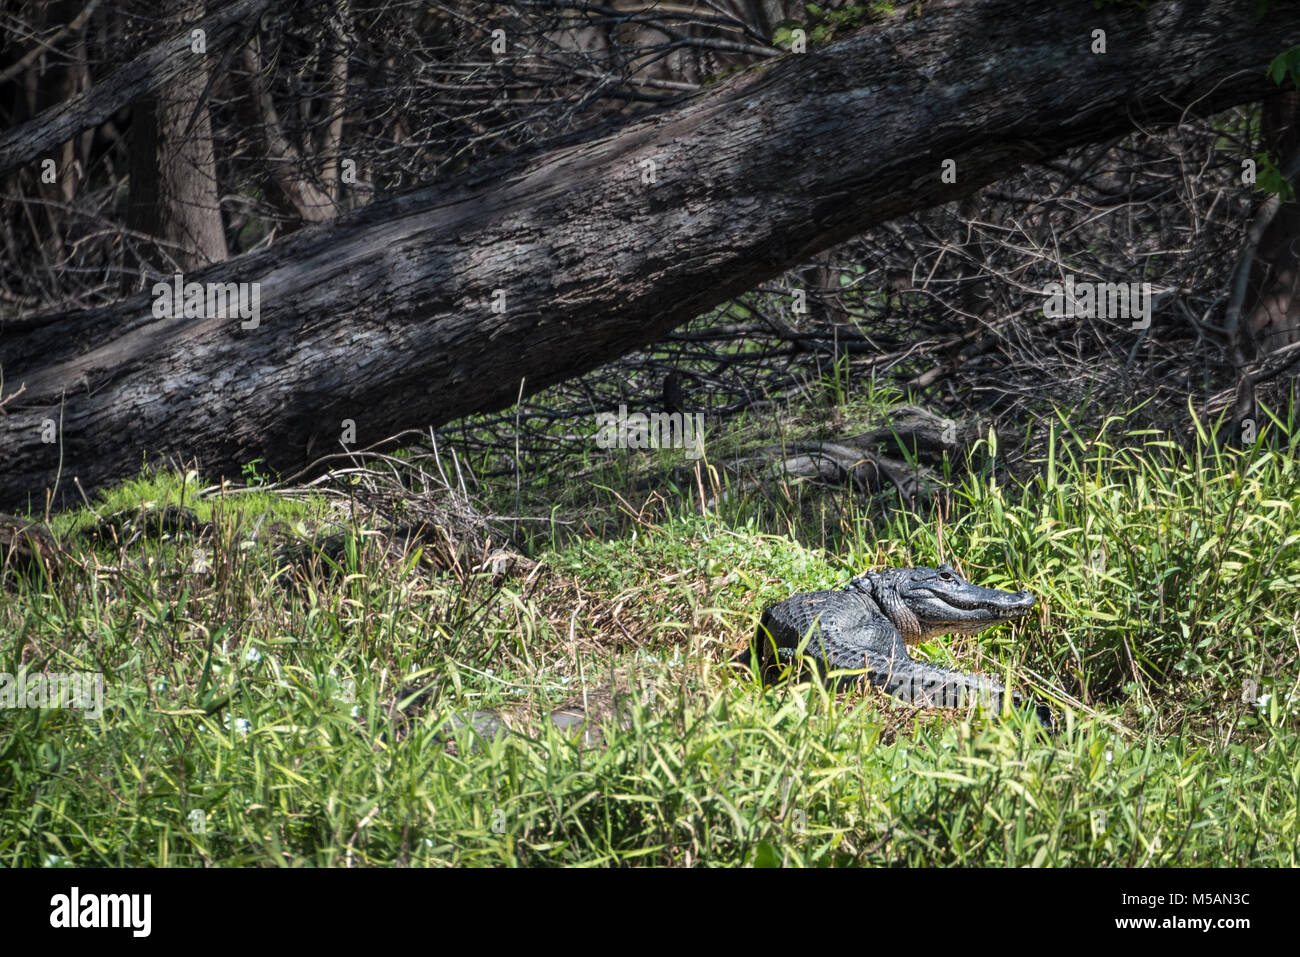 American alligator along the grassy riverbank of the St. Johns River in Central Florida near Blue Spring State Park. - Stock Image